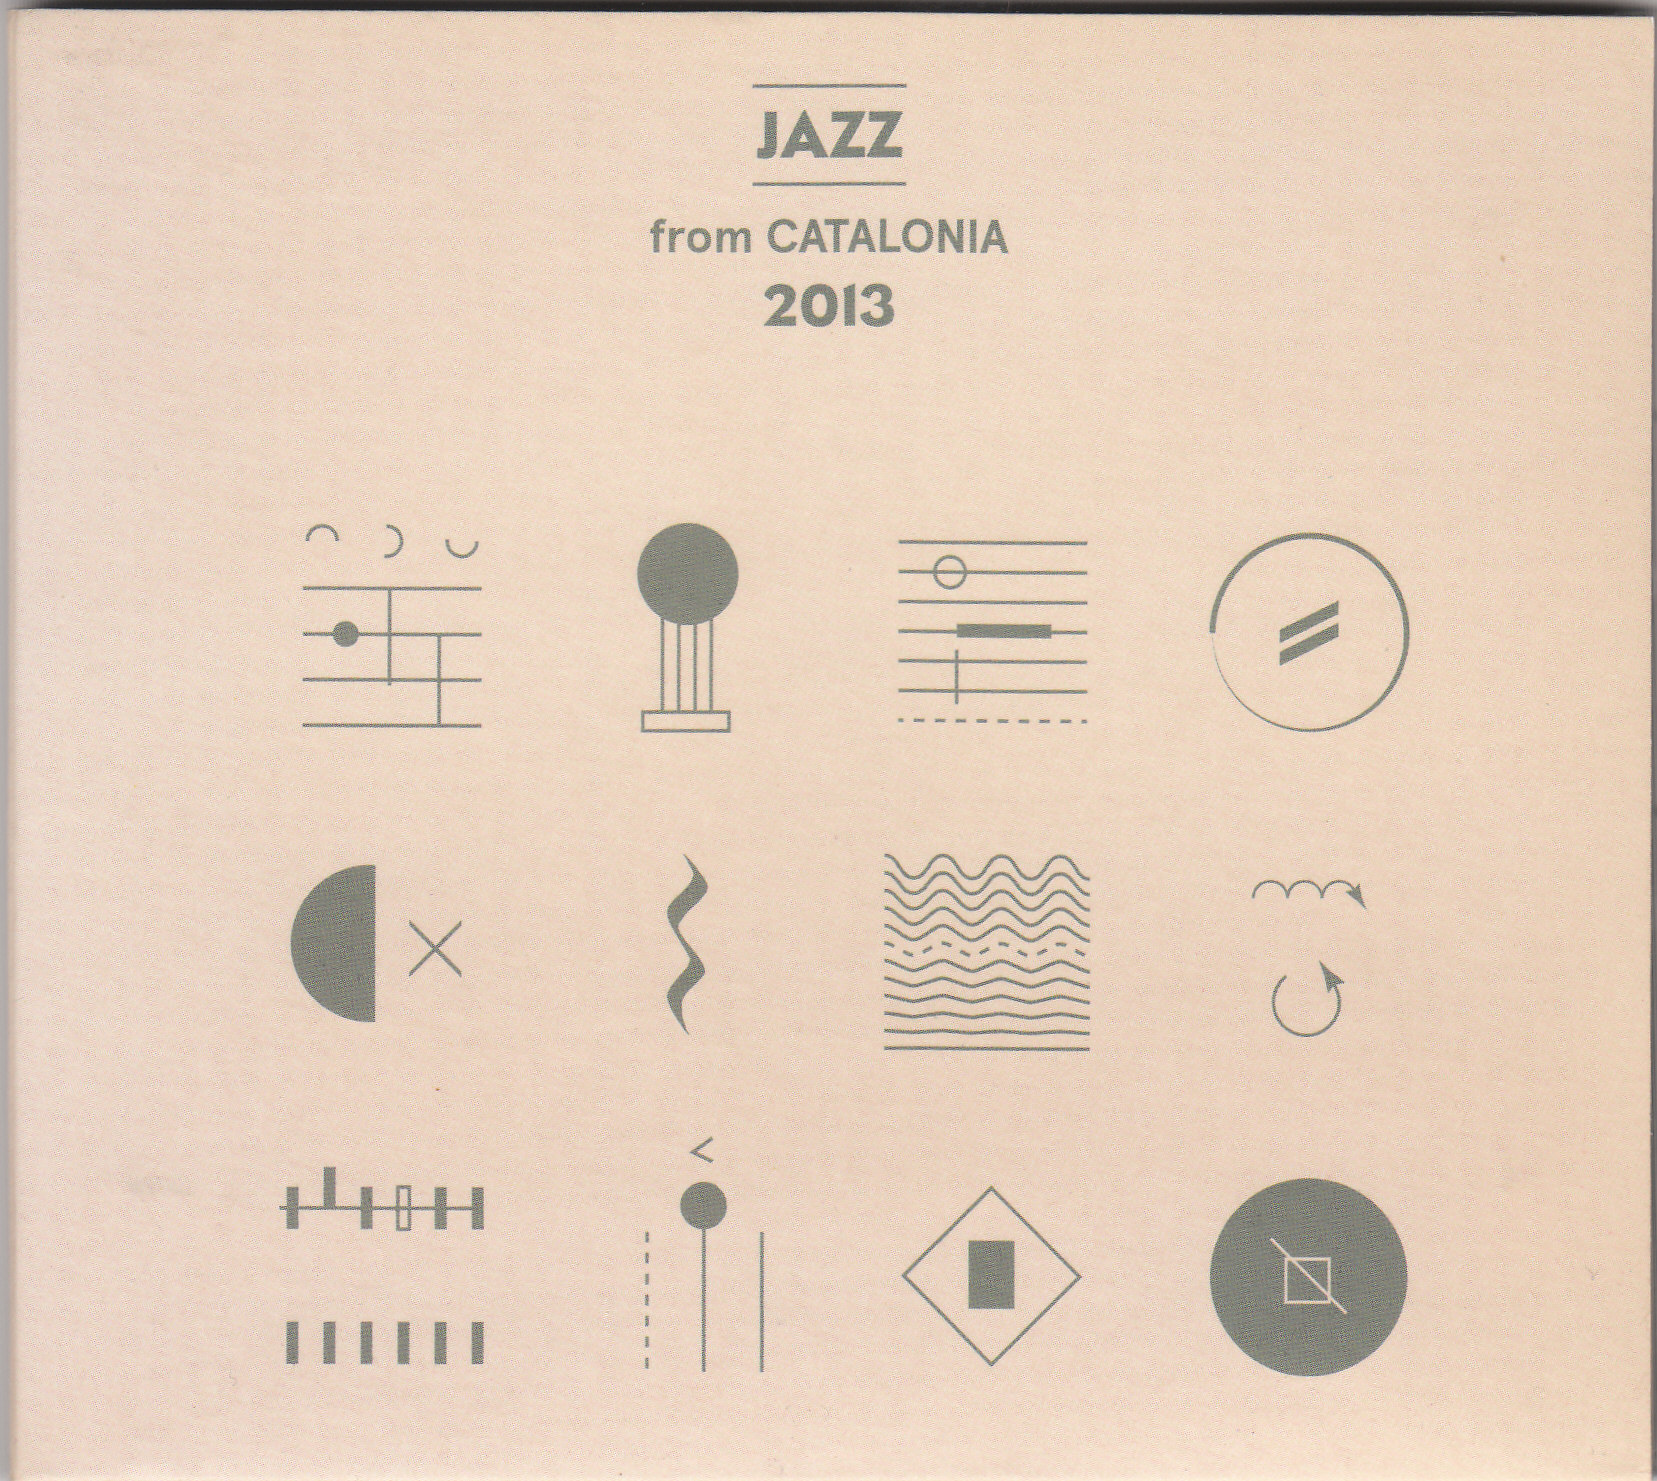 Jazz from Catalonia 2013_0001.jpg